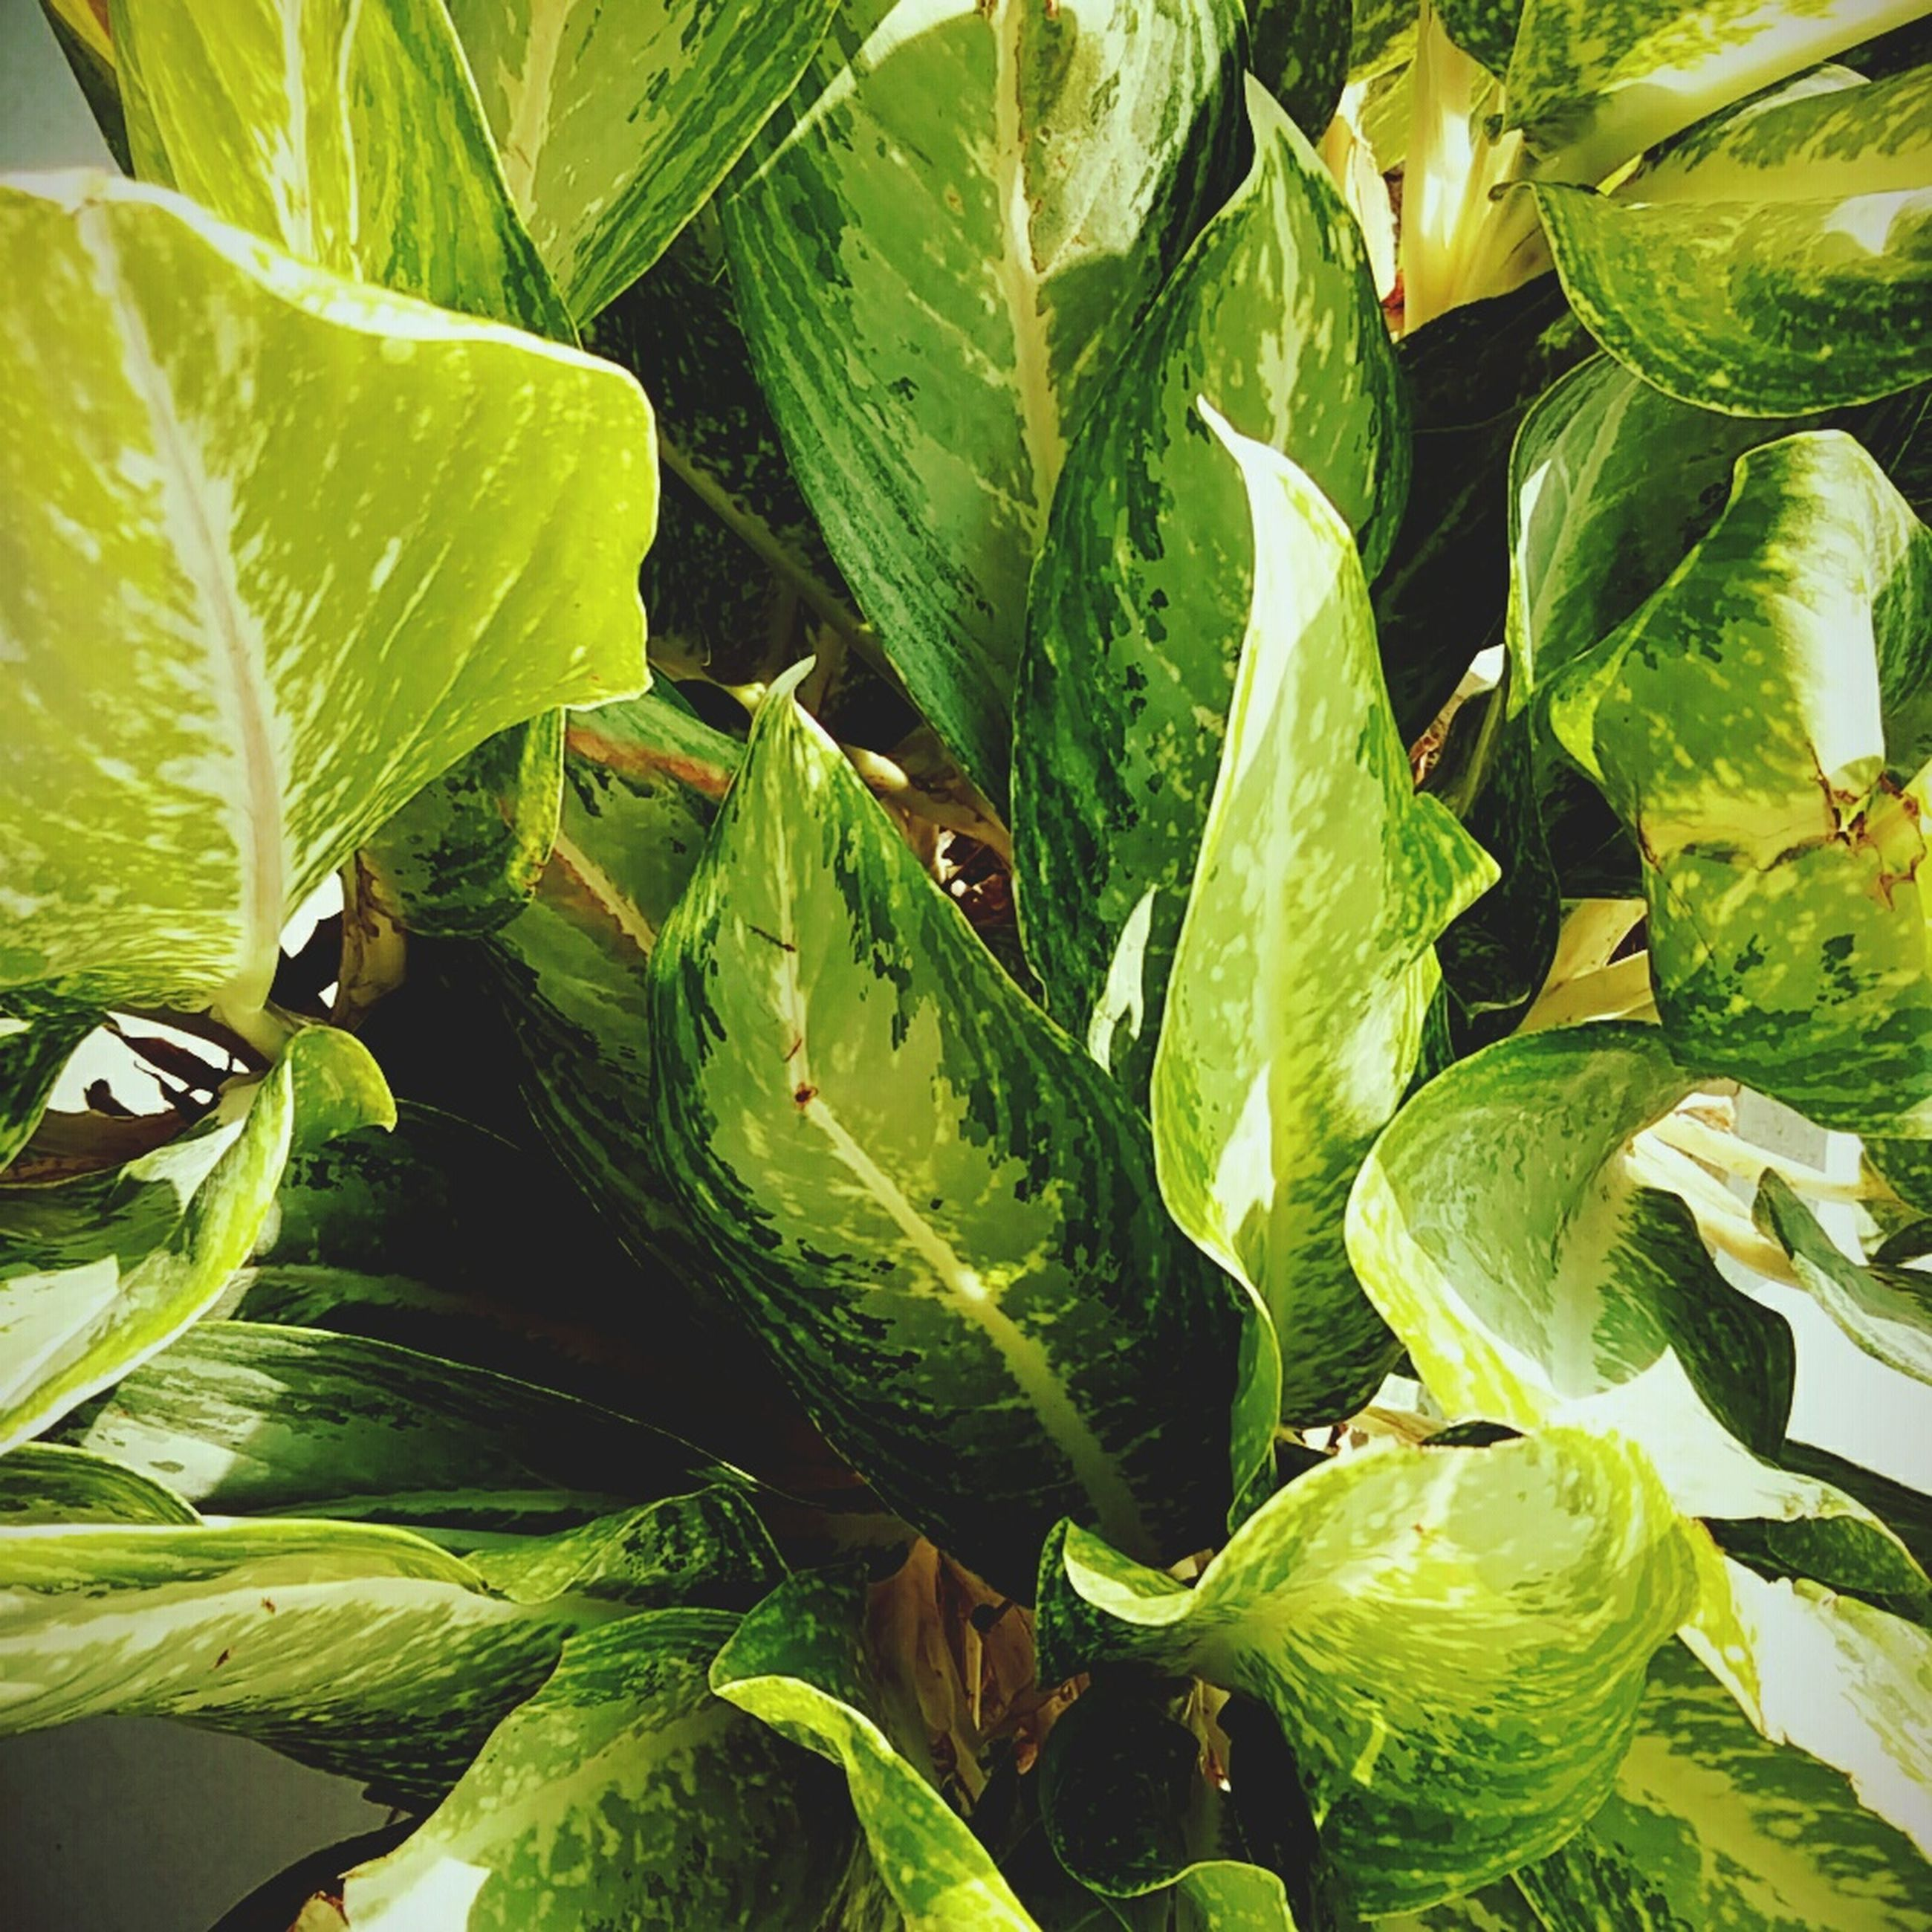 leaf, green color, plant, growth, freshness, food and drink, nature, close-up, healthy eating, vegetable, green, leaves, full frame, food, high angle view, backgrounds, beauty in nature, outdoors, no people, day